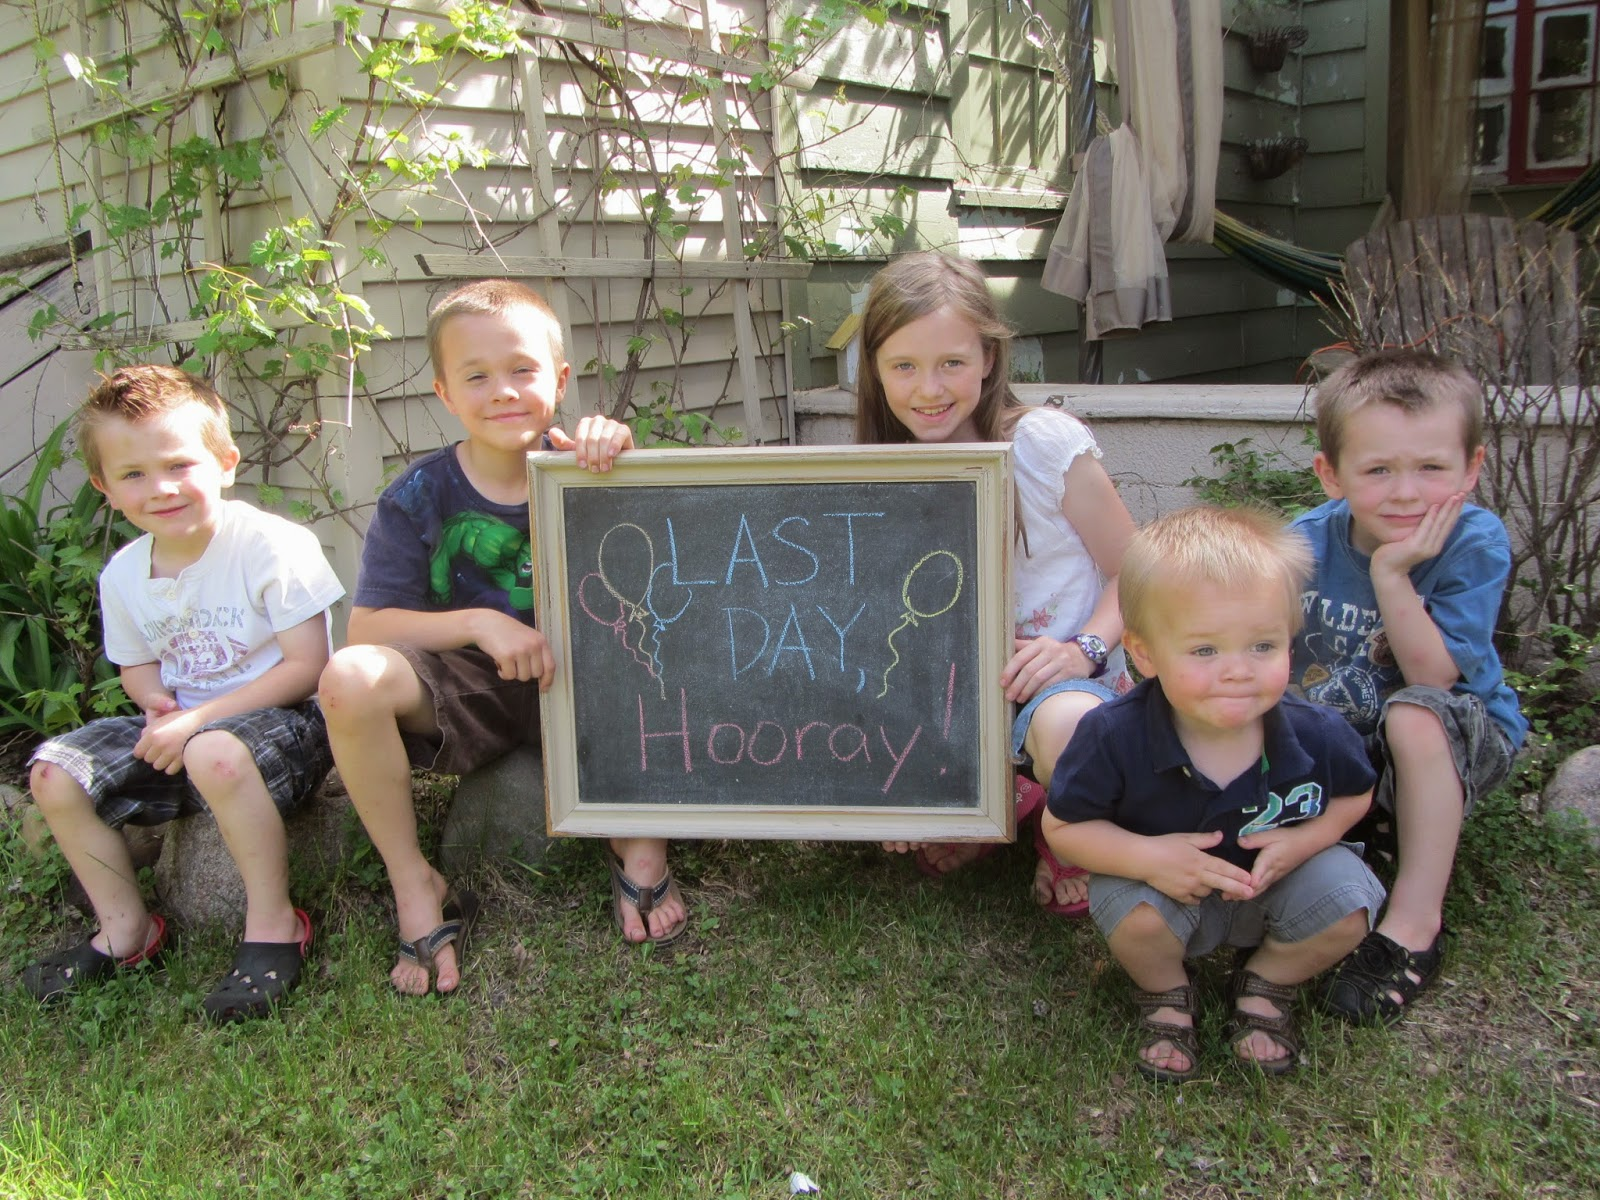 Last Day, Hooray! 2014 {How one family celebrated the last day of homeschool} The Unlikely Homeschool